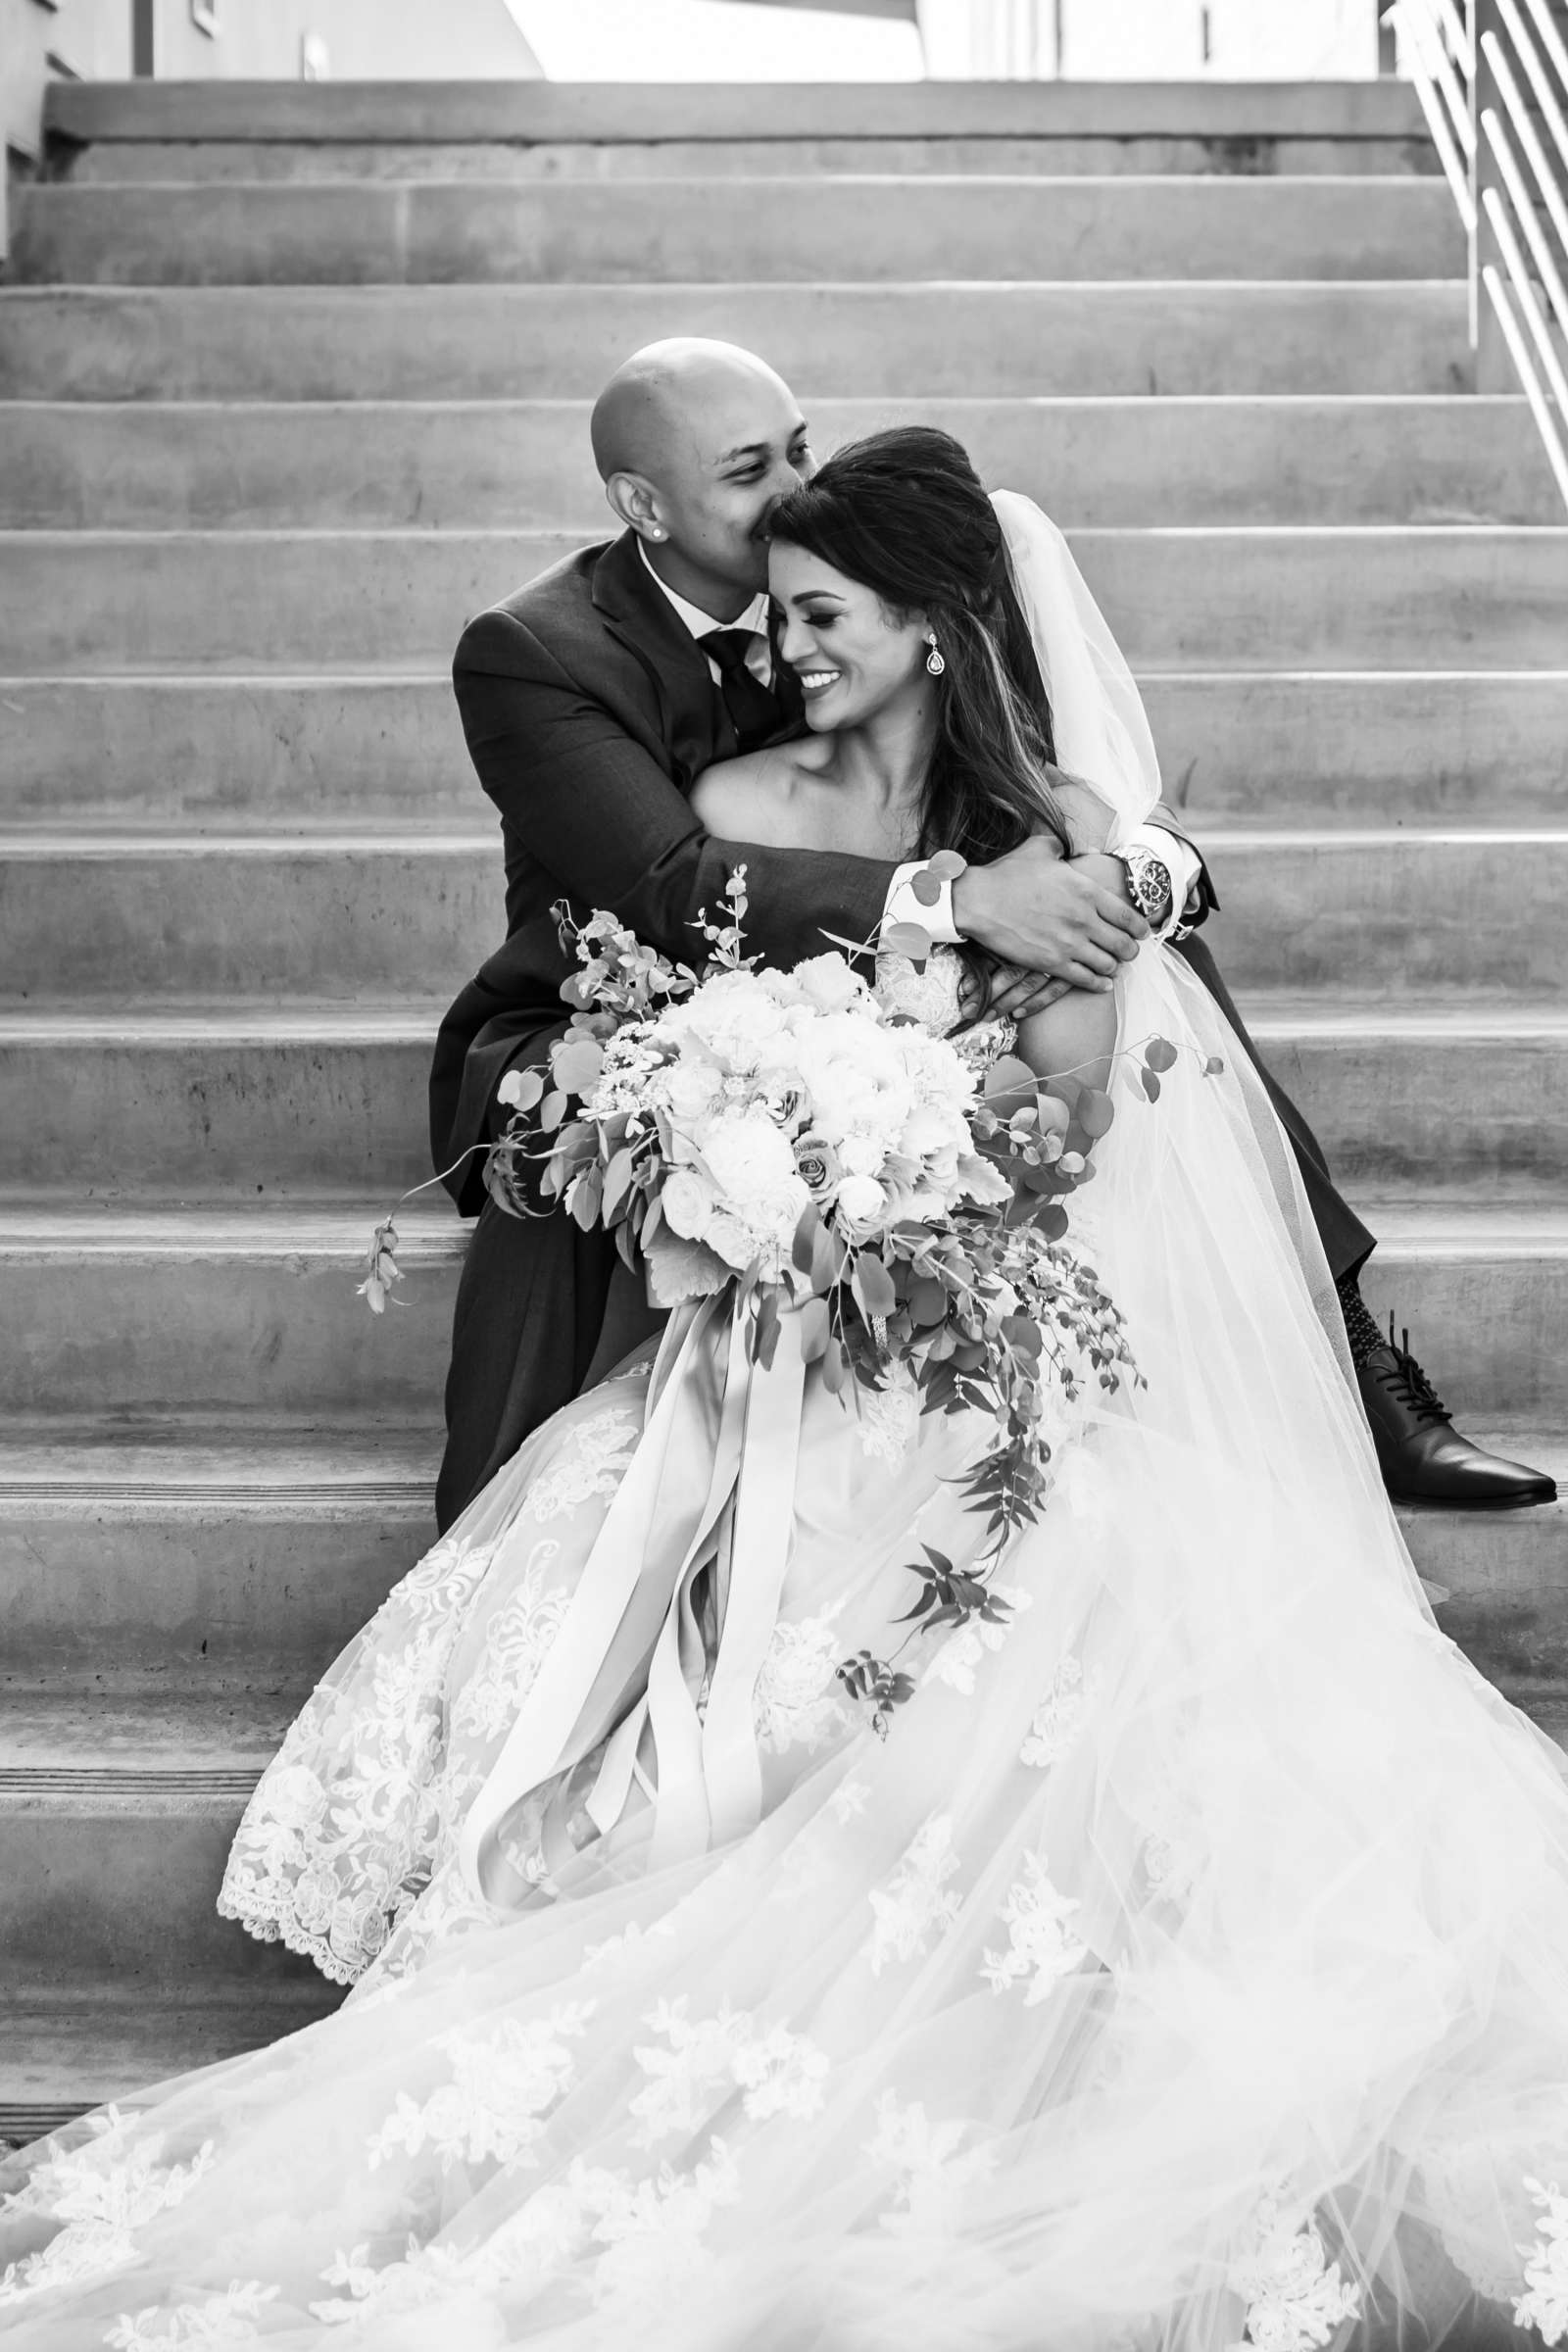 Scripps Seaside Forum Wedding coordinated by Lavish Weddings, Cindy and Justin Wedding Photo #381840 by True Photography